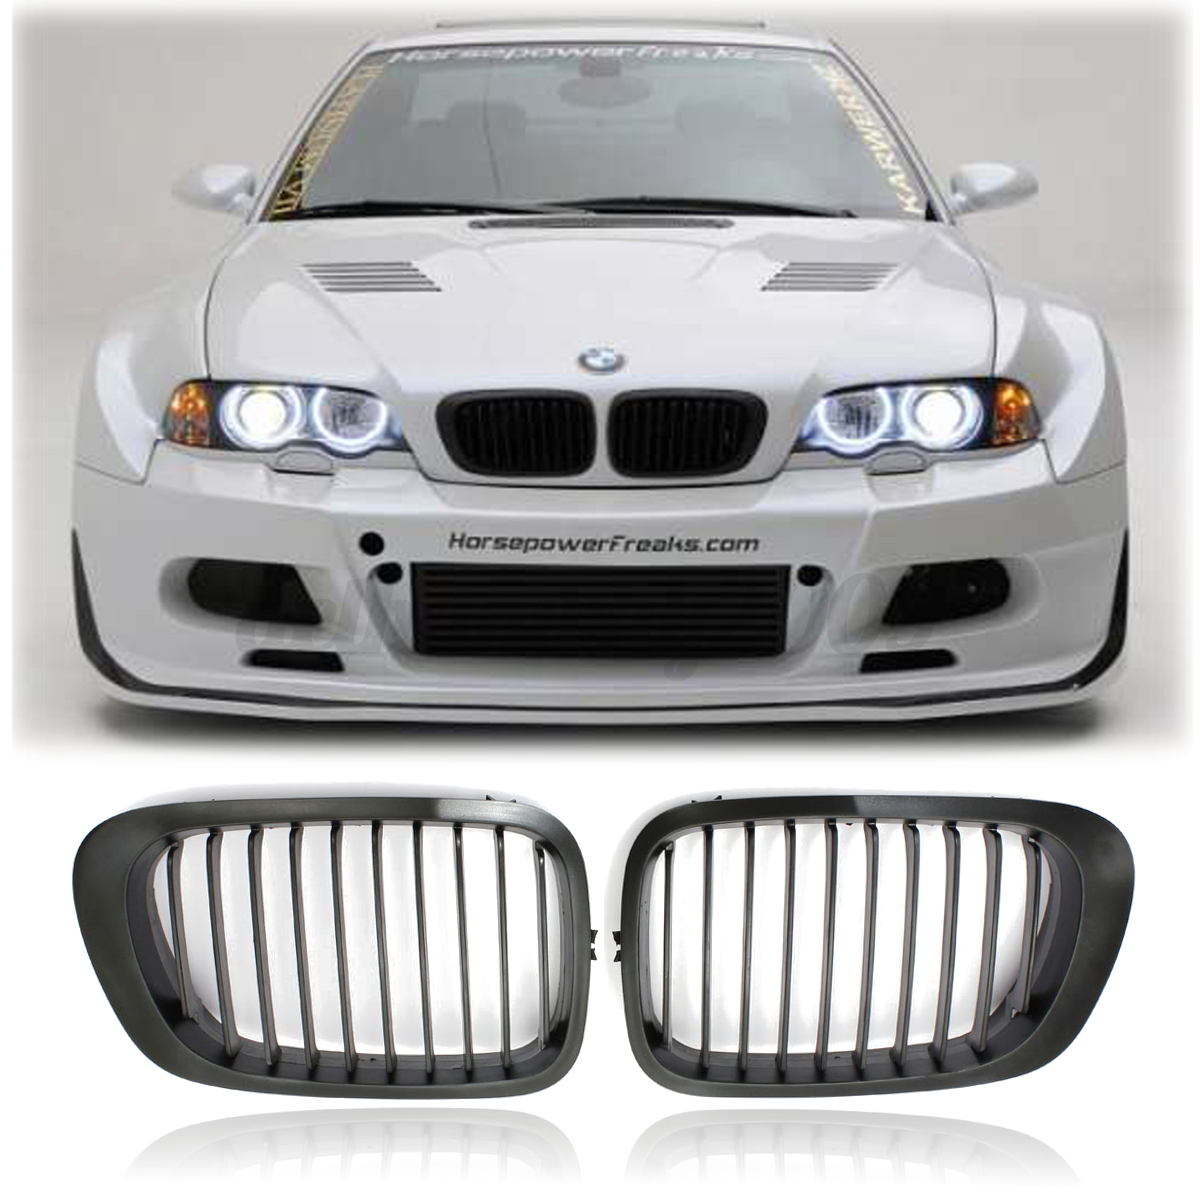 paire de rein avant noir brillant calandre pour bmw e46 s rie 3 coup 2 portes 1999 2003 ebay. Black Bedroom Furniture Sets. Home Design Ideas